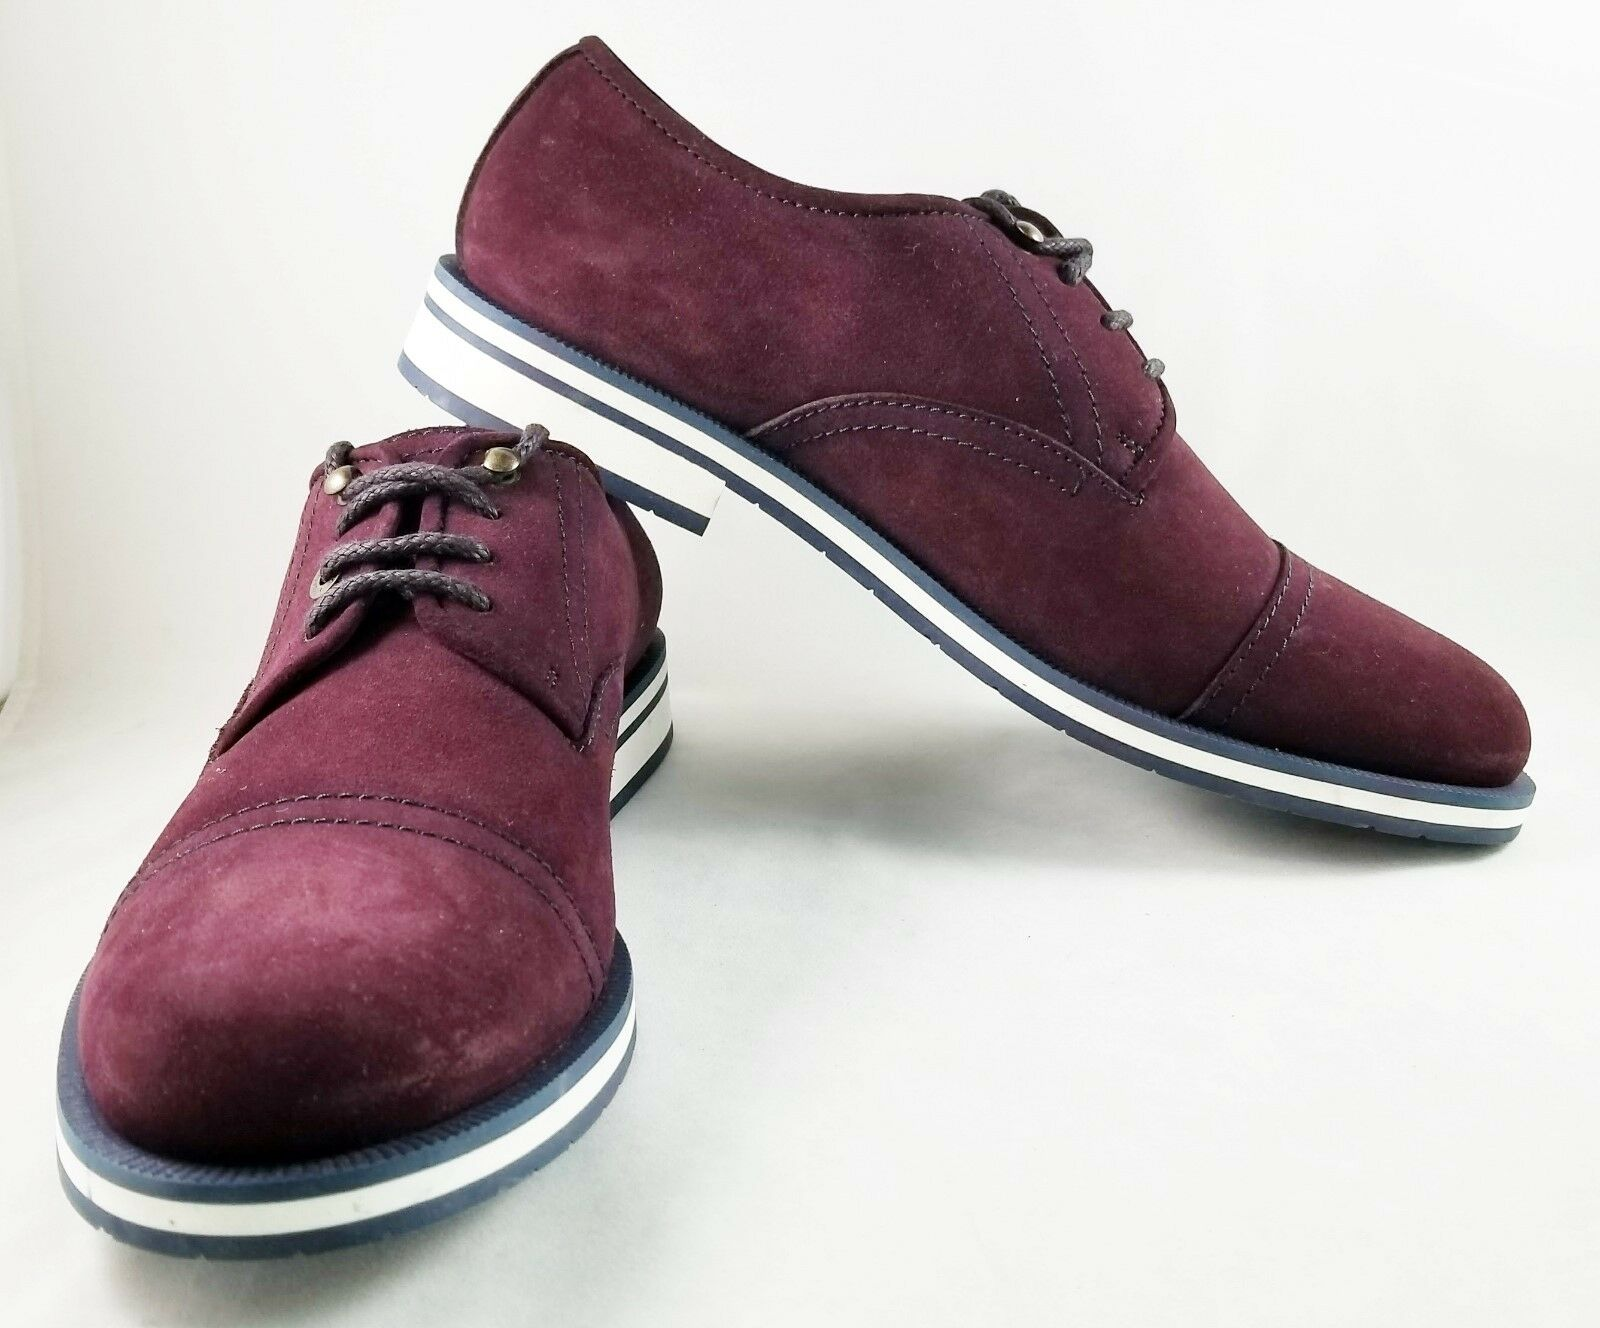 Jimmy Choo Men's Burgundy suede shoes size 43